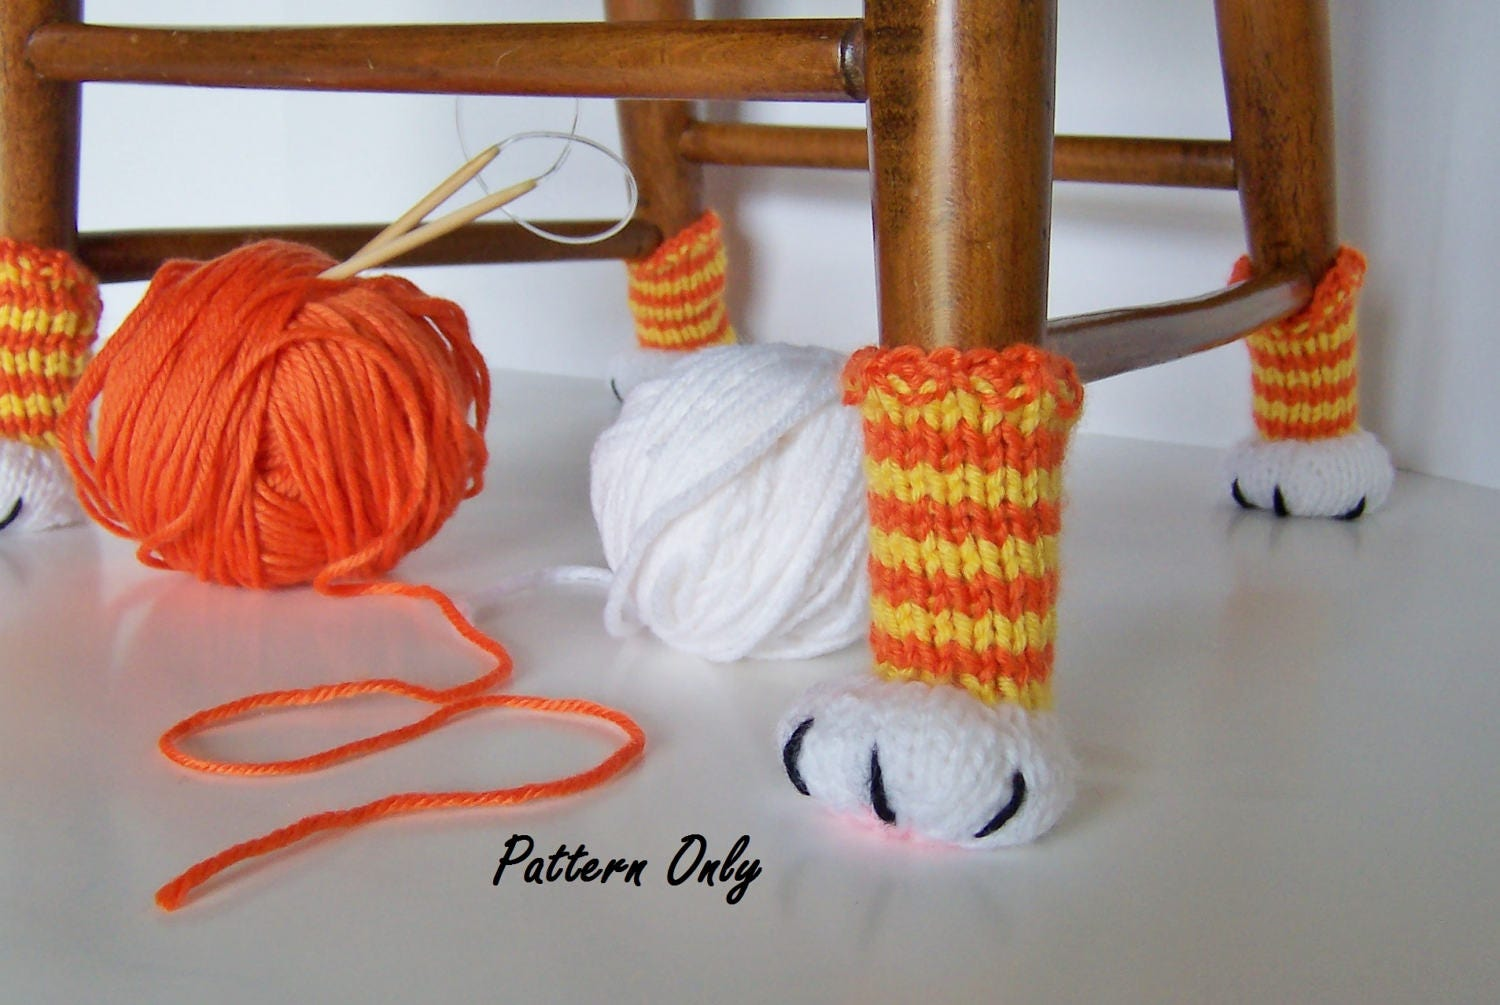 Knitting Pattern Cat Paw Chair Leg Covers DIY Instruction to